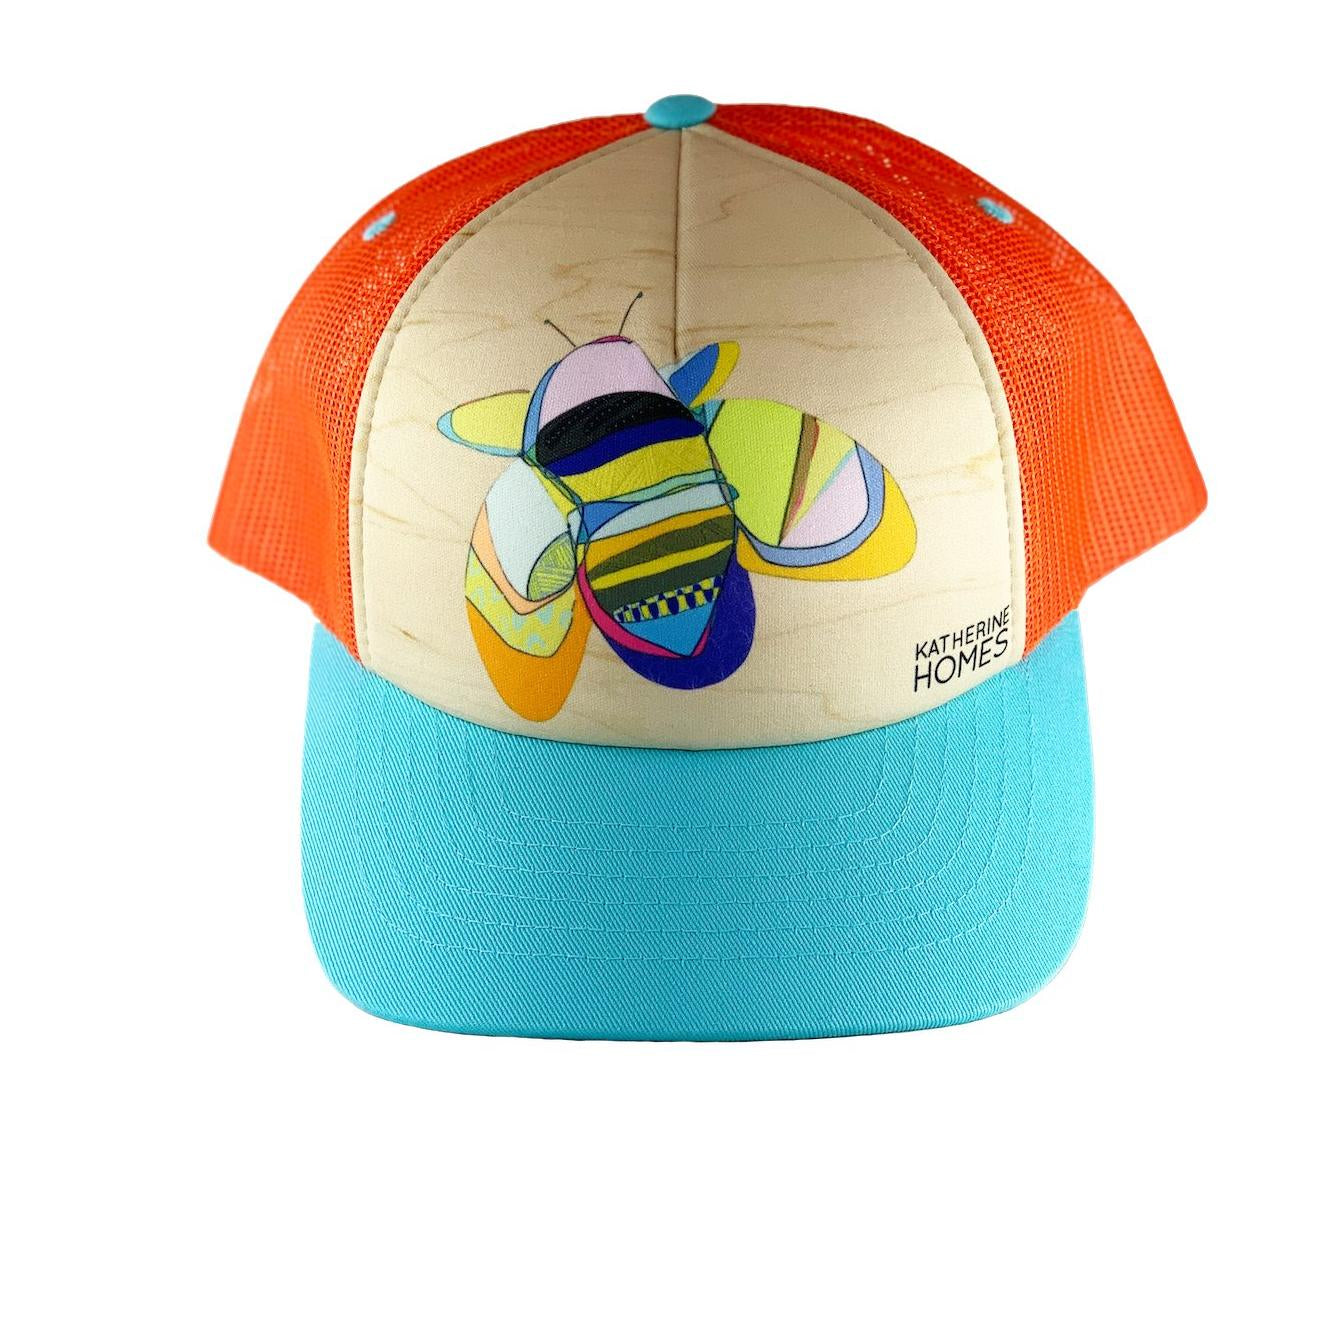 Katherine Homes Rusty Patched Bumble Bee Trucker Hat |Turquoise and Orange